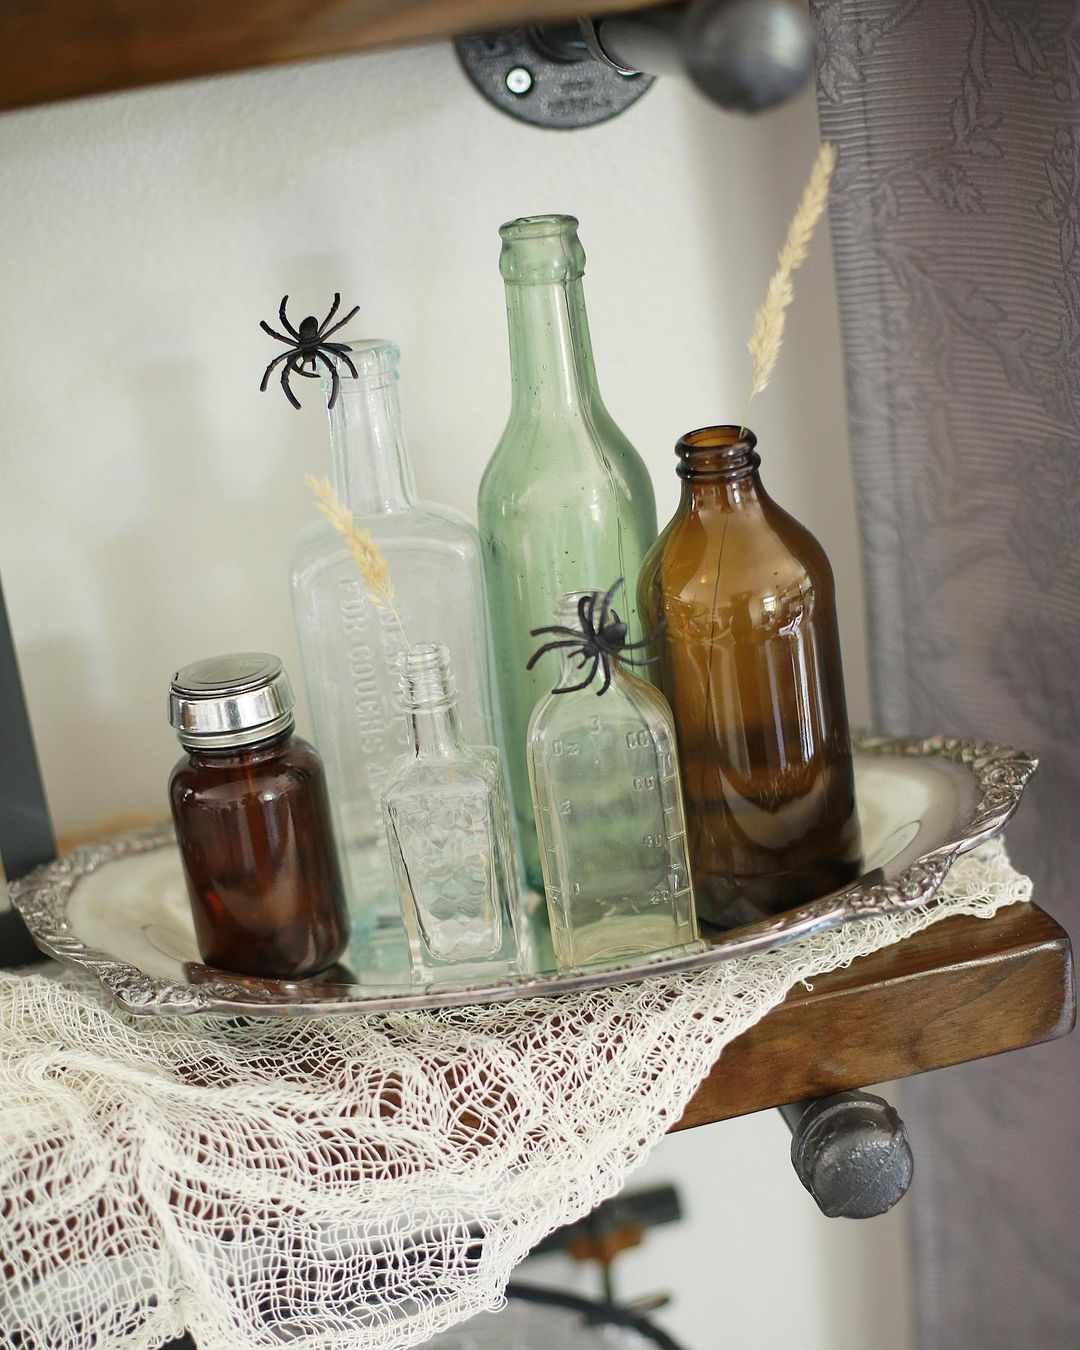 Bottle with spider